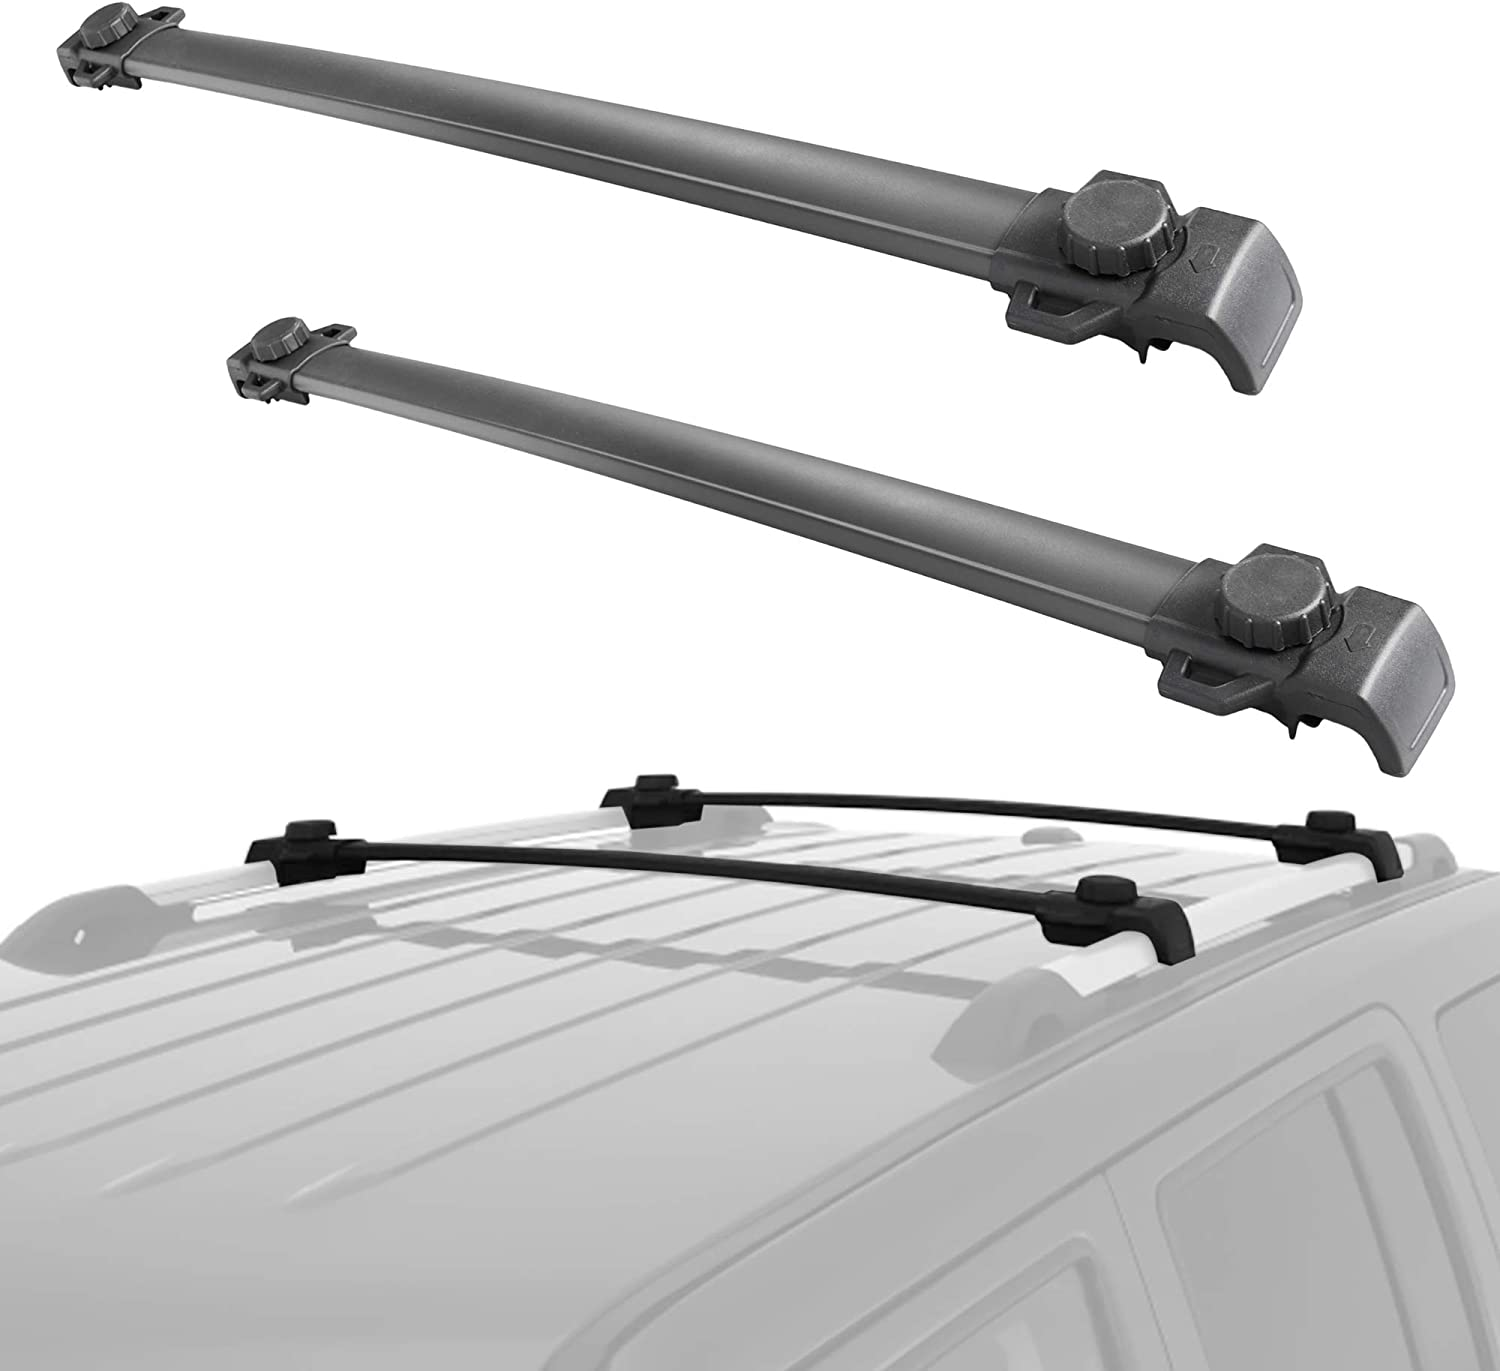 MOSTPLUS Roof Rack Cross Bar Rail Compatible with 2007-2017 Jeep Patriot Cargo Racks Rooftop Luggage Canoe Kayak Carrier Rack